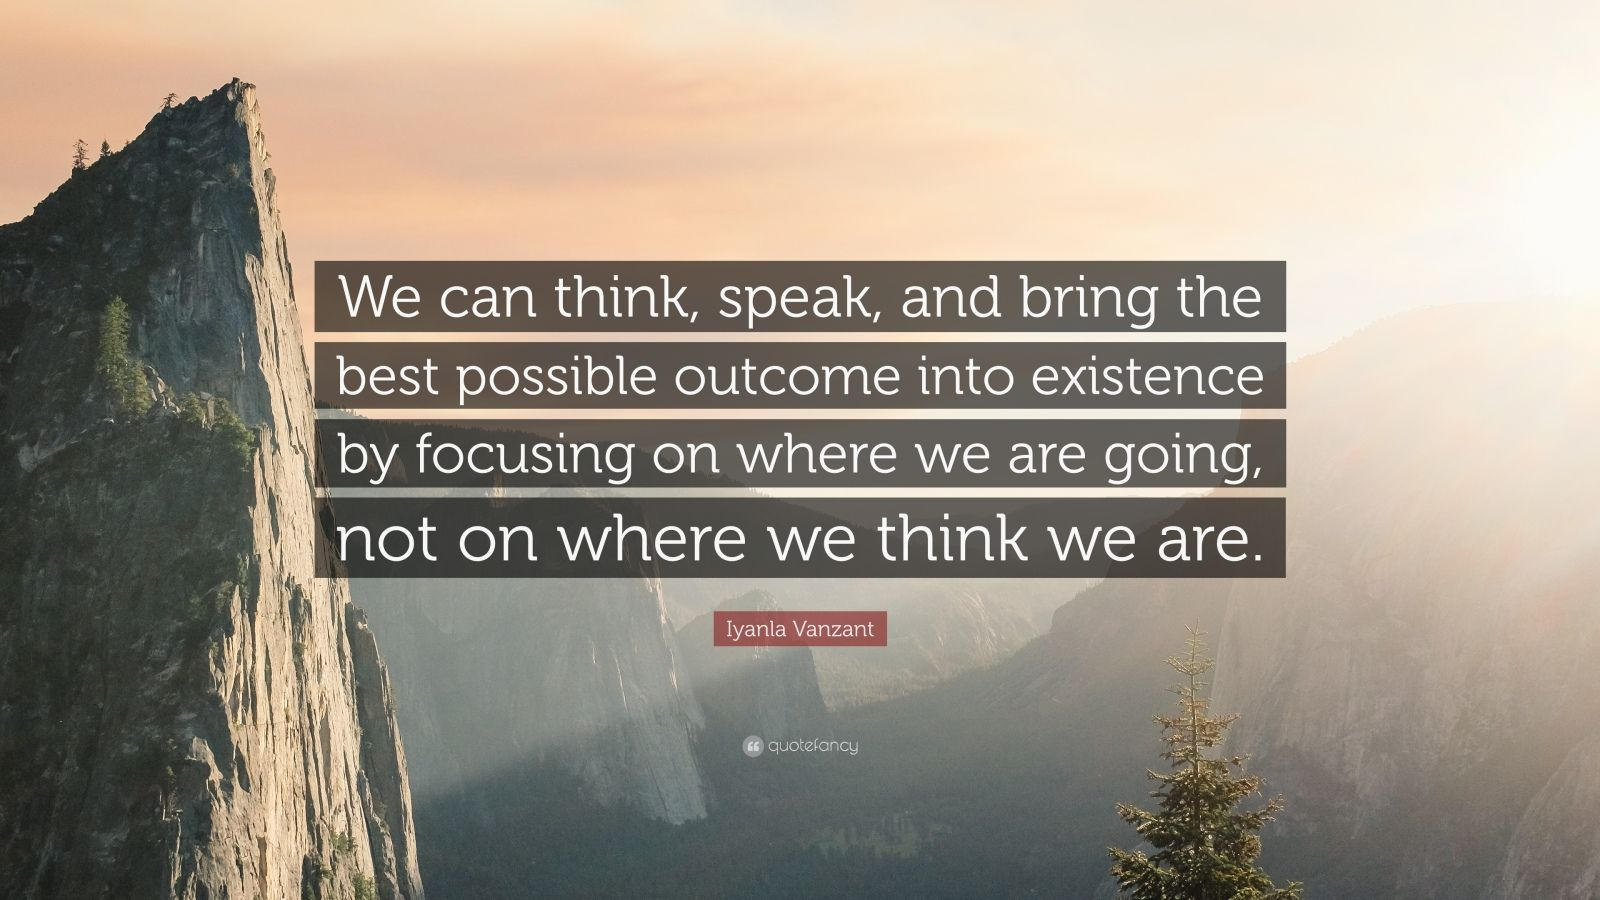 """Iyanla Vanzant Quote: """"We can think, speak, and bring the best possible outcome into existence by focusing on where we are going, not on where we think we are."""""""